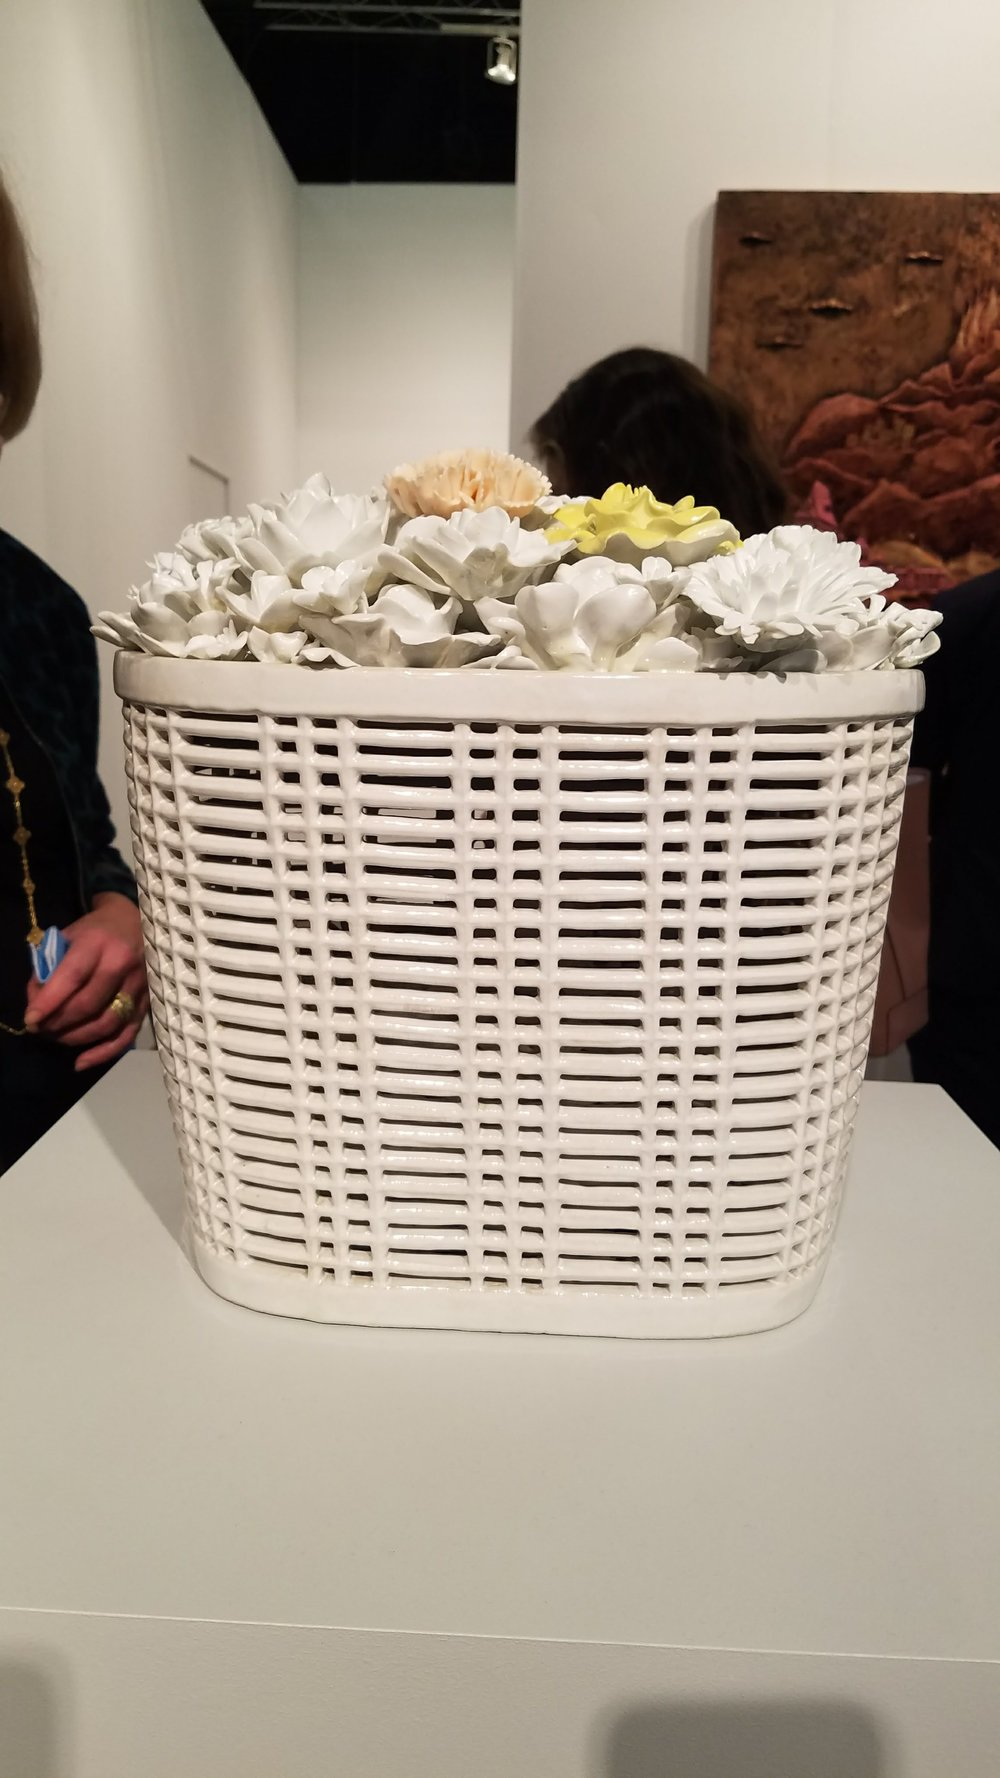 Ai Weiwei, Bicycle basket with flowers in Porcelain, 2015, Porcelain, courtesy of Lisson Gallery